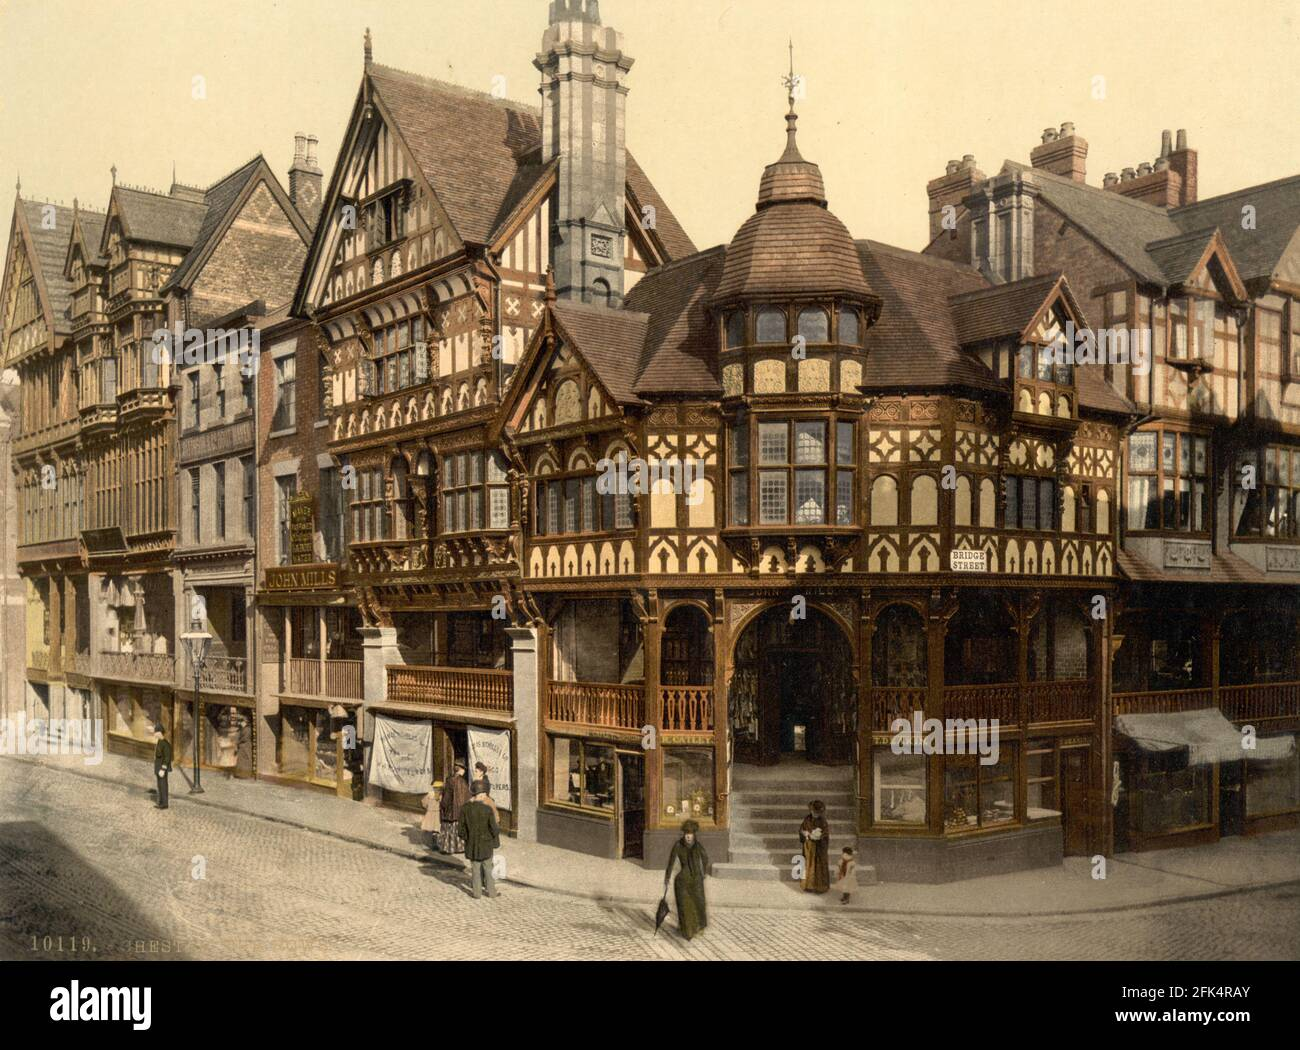 Rows and Bridge Street à Chester, Cheshire vers 1890-1900 Banque D'Images